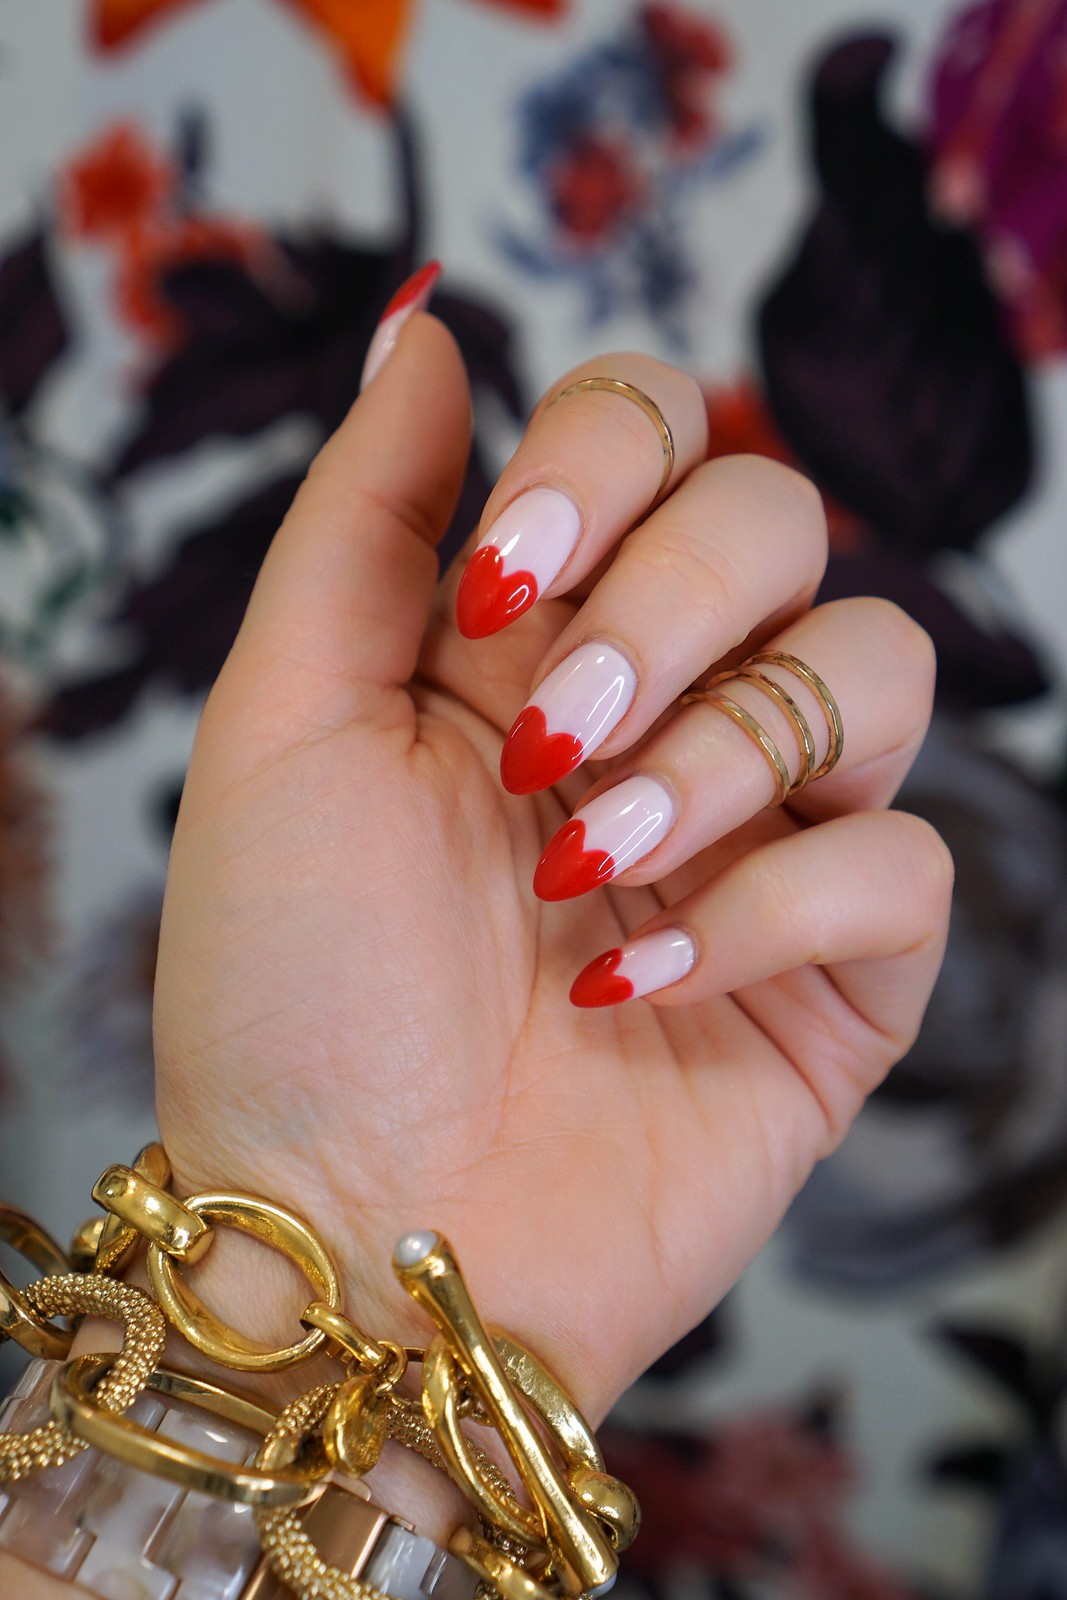 Heart Nails | Heart Manicure | Pink Red Nail Art | Valentines Day Nail Inspiration | Galentines Day Nail Art | Nail Ideas | Nail Designs | UV Nails | Hard Gel Manicure